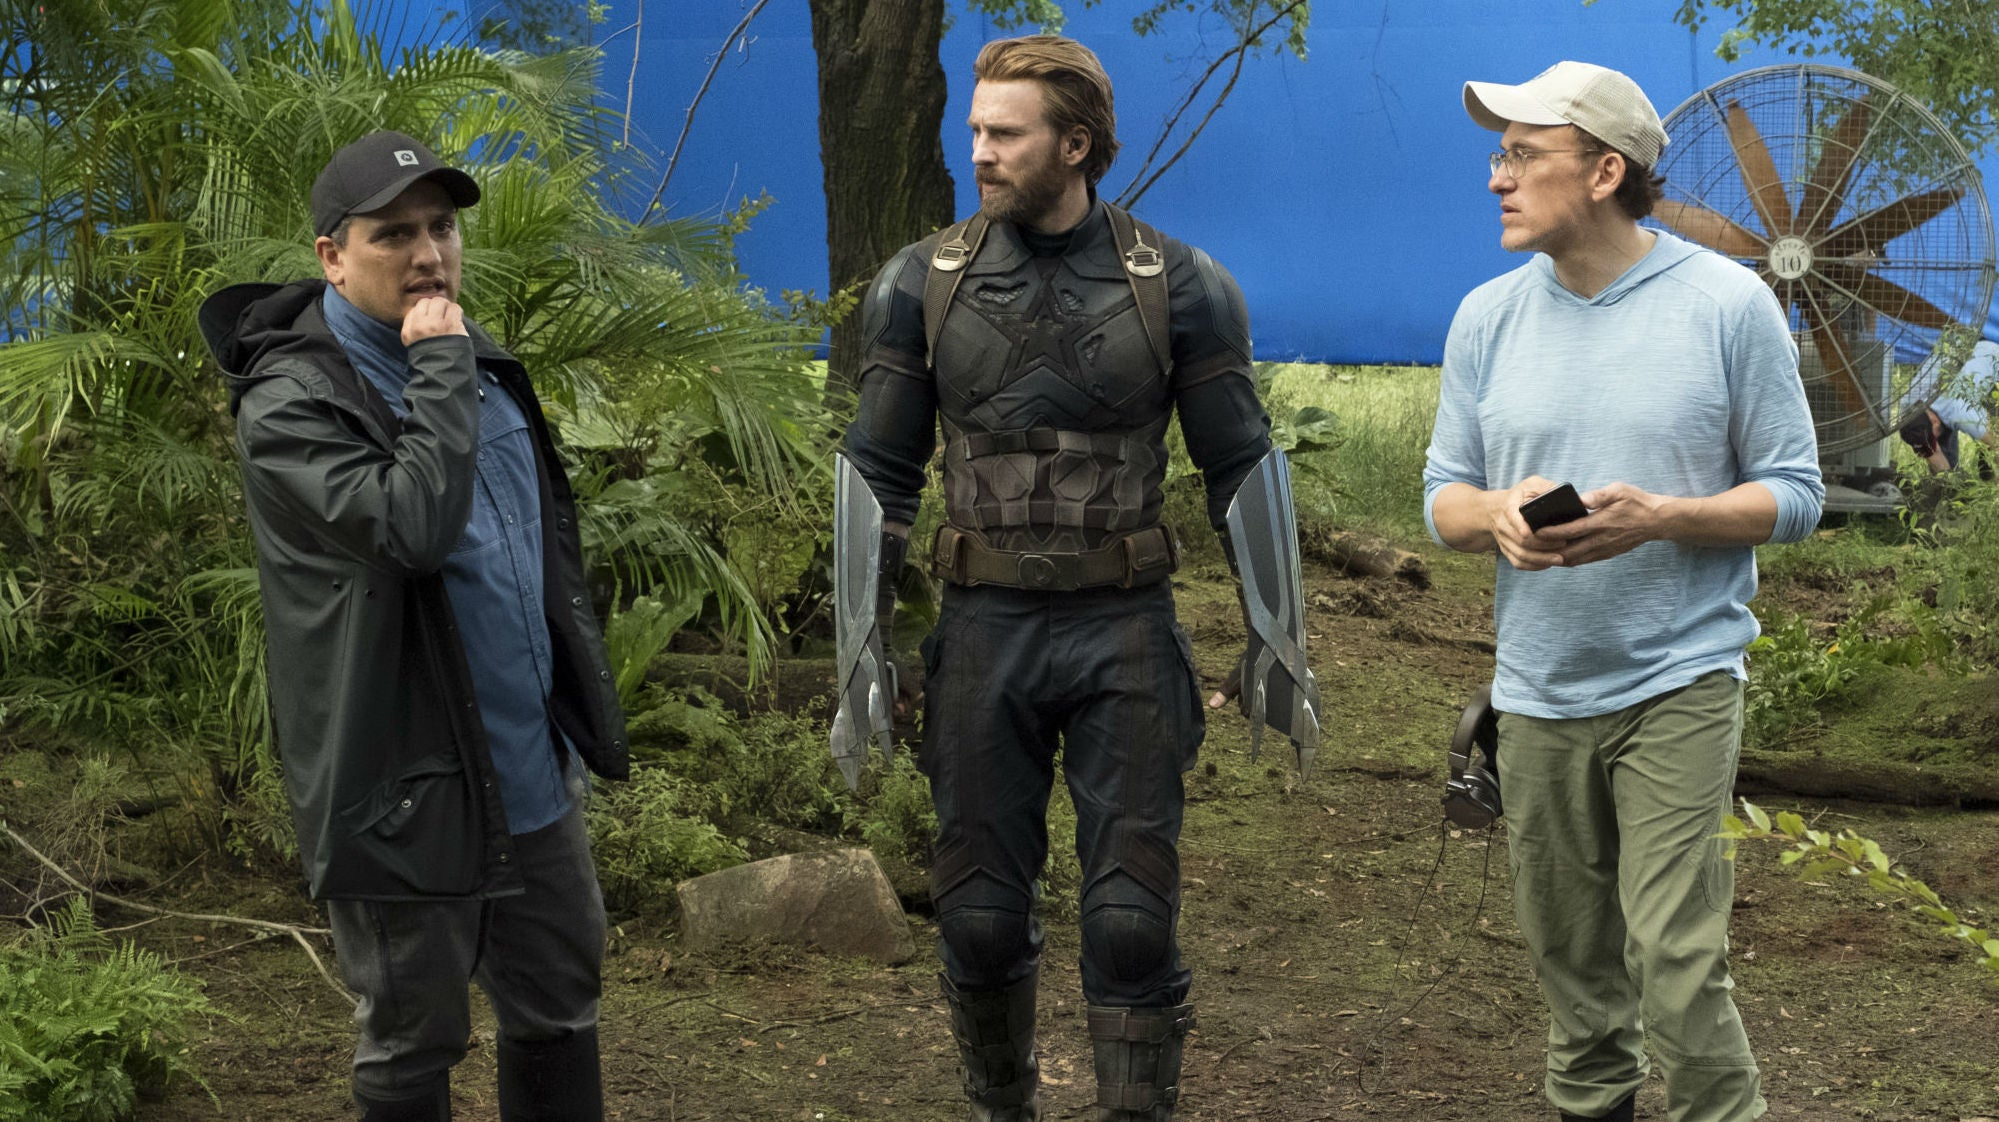 Joe Russo Provides Some Micro Avengers 4 Updates, But Still No Title